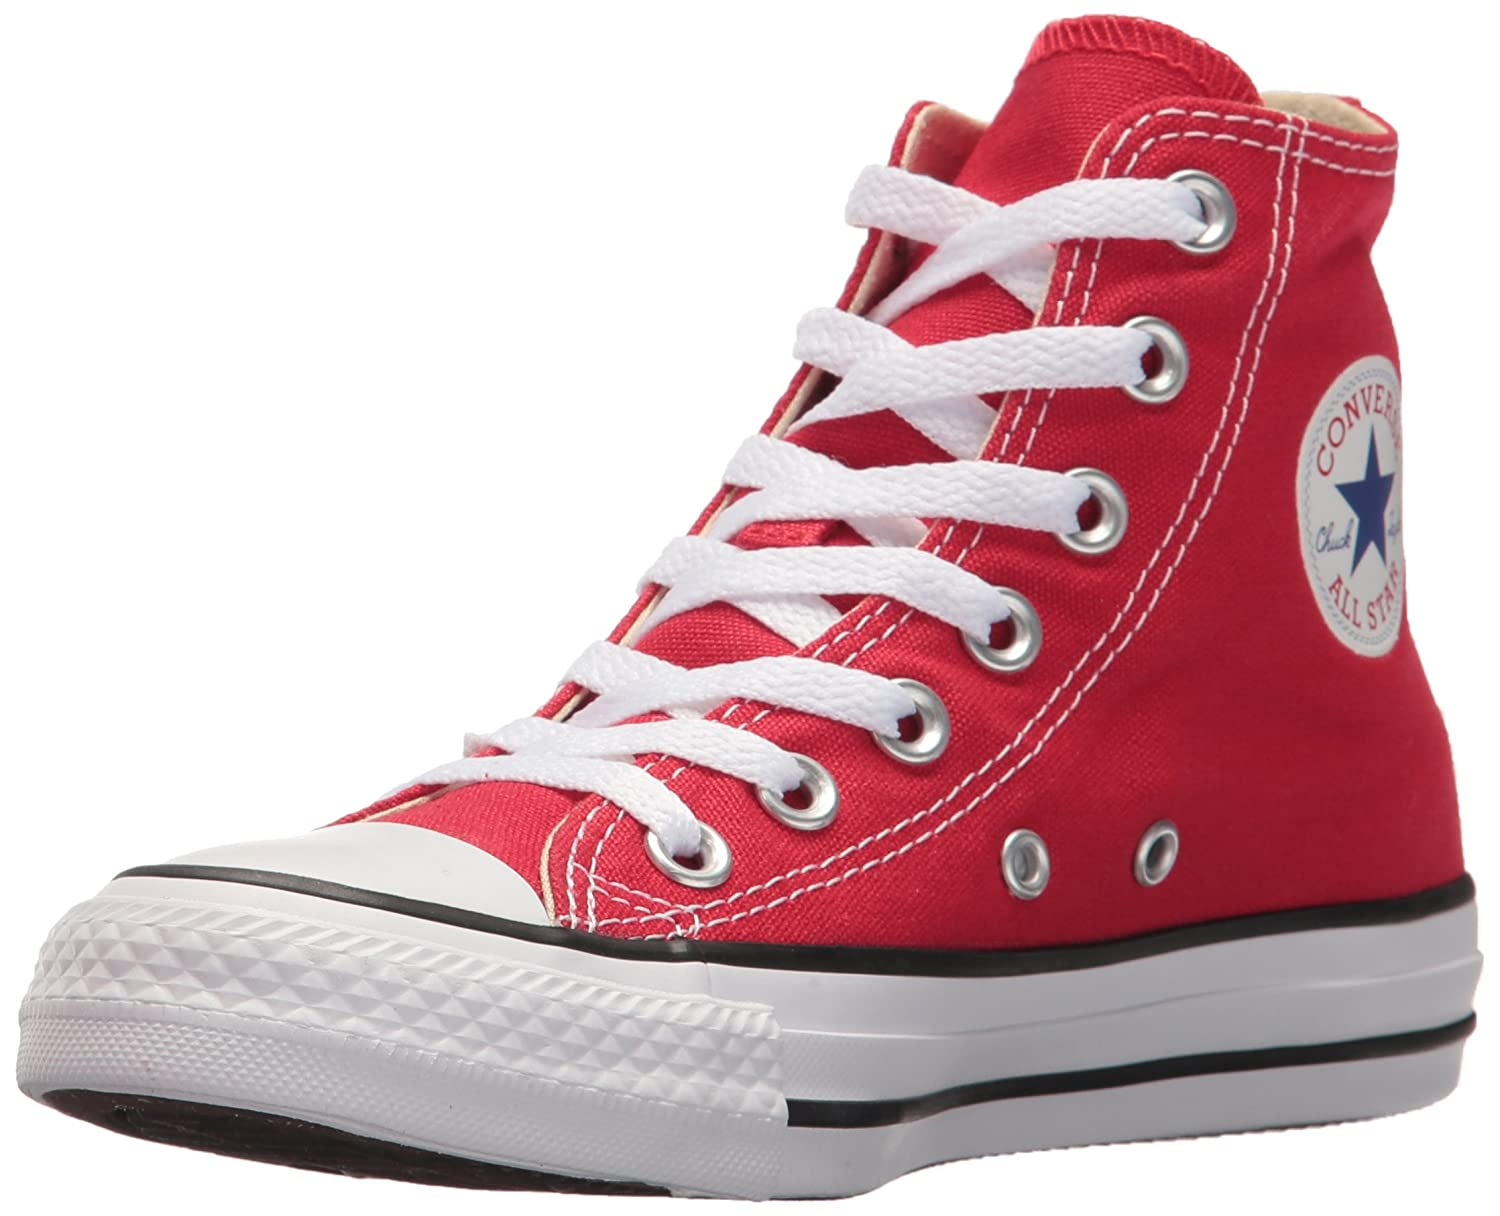 Converse Chuck Taylor All Star High Top B002VSMKZC 6.5 M US|Red